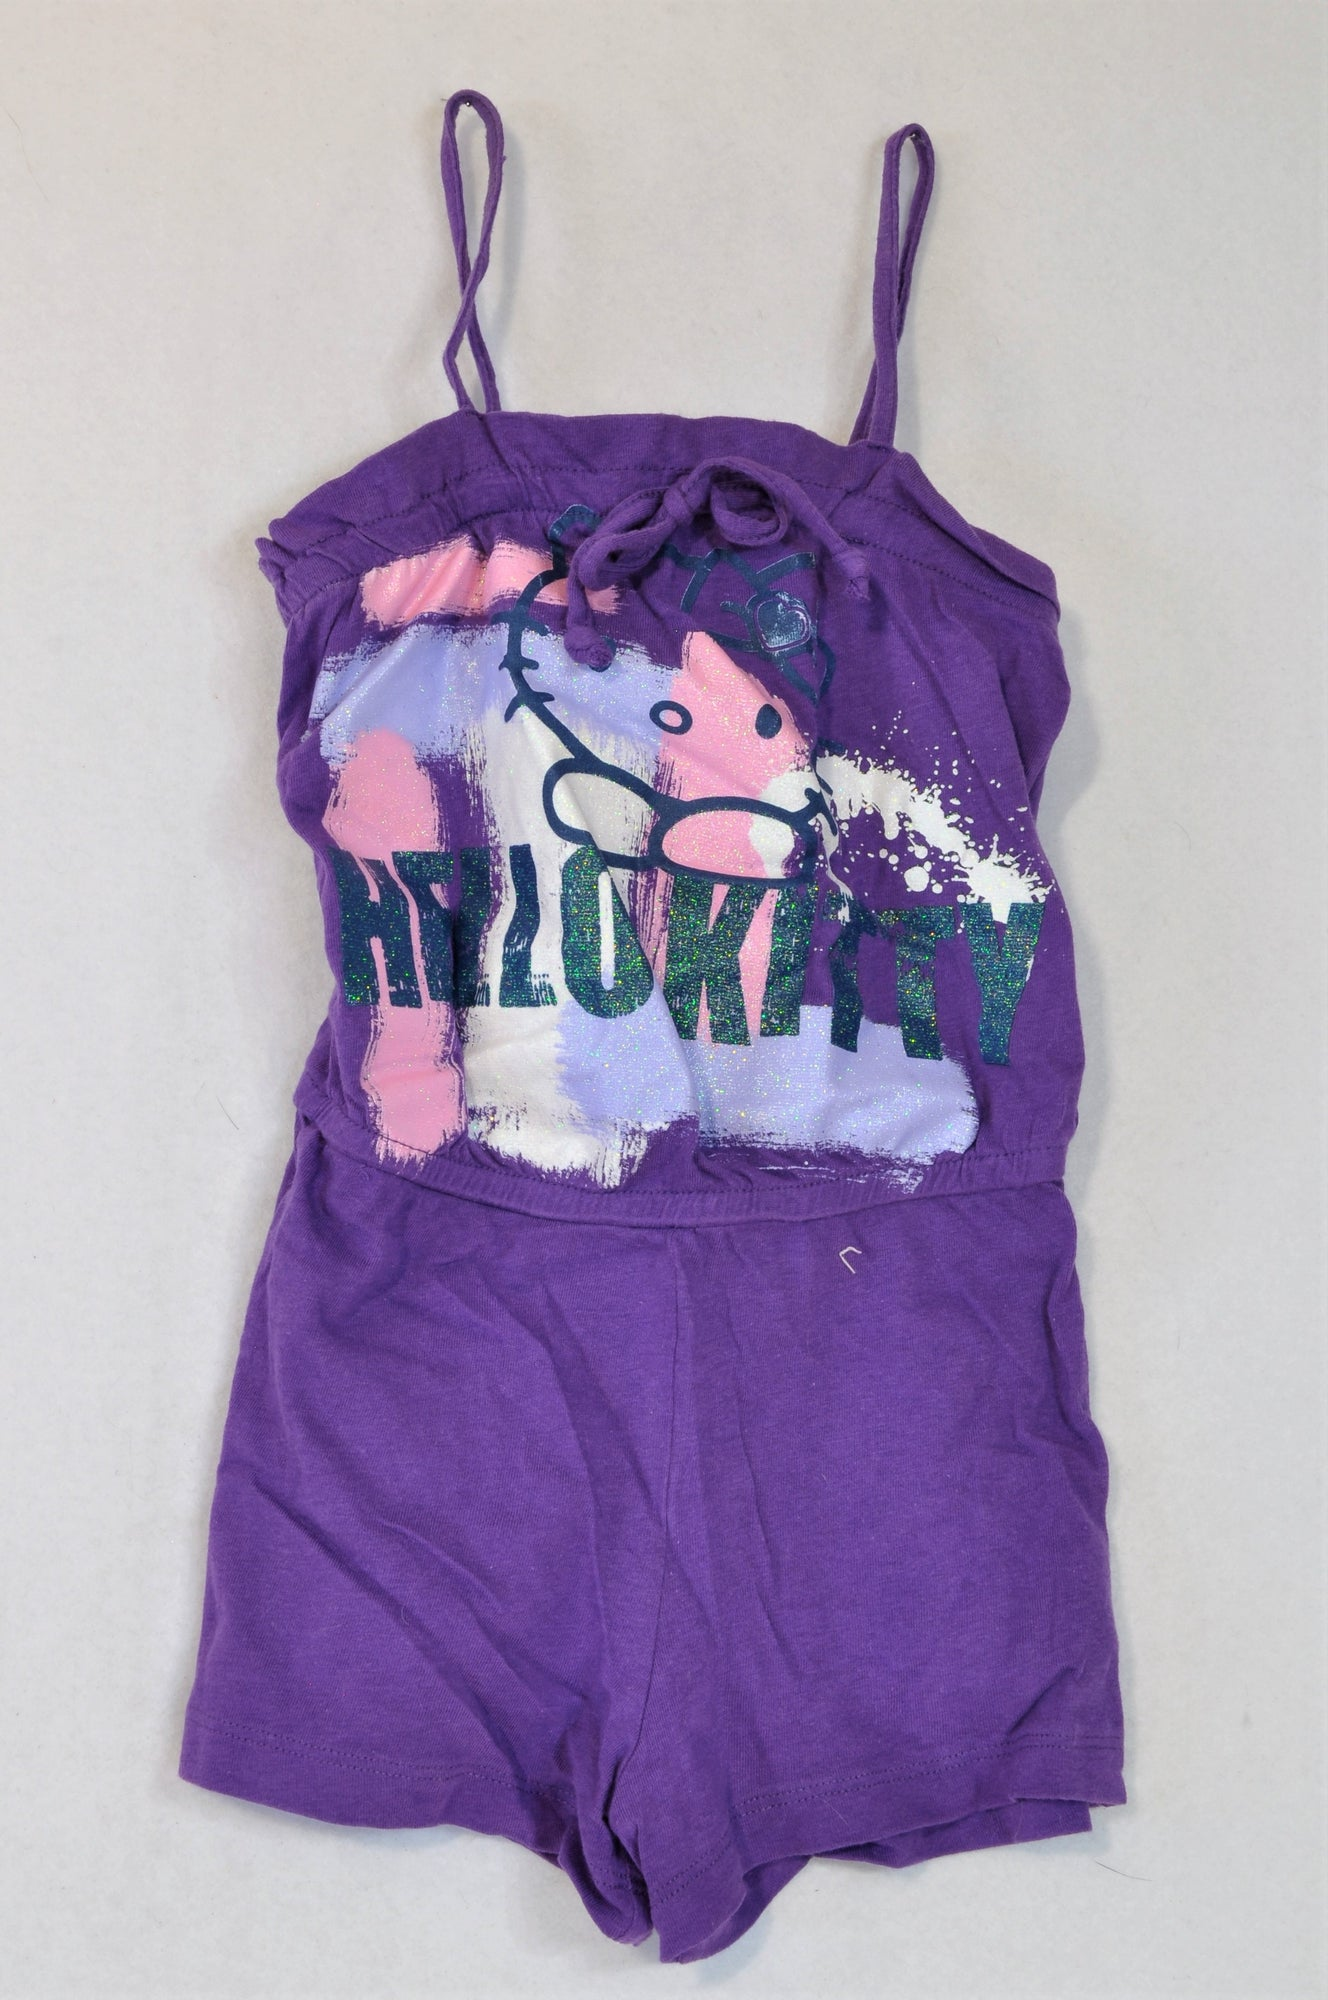 Sanrio Purple Hello Kitty Romper Girls 2-3 years